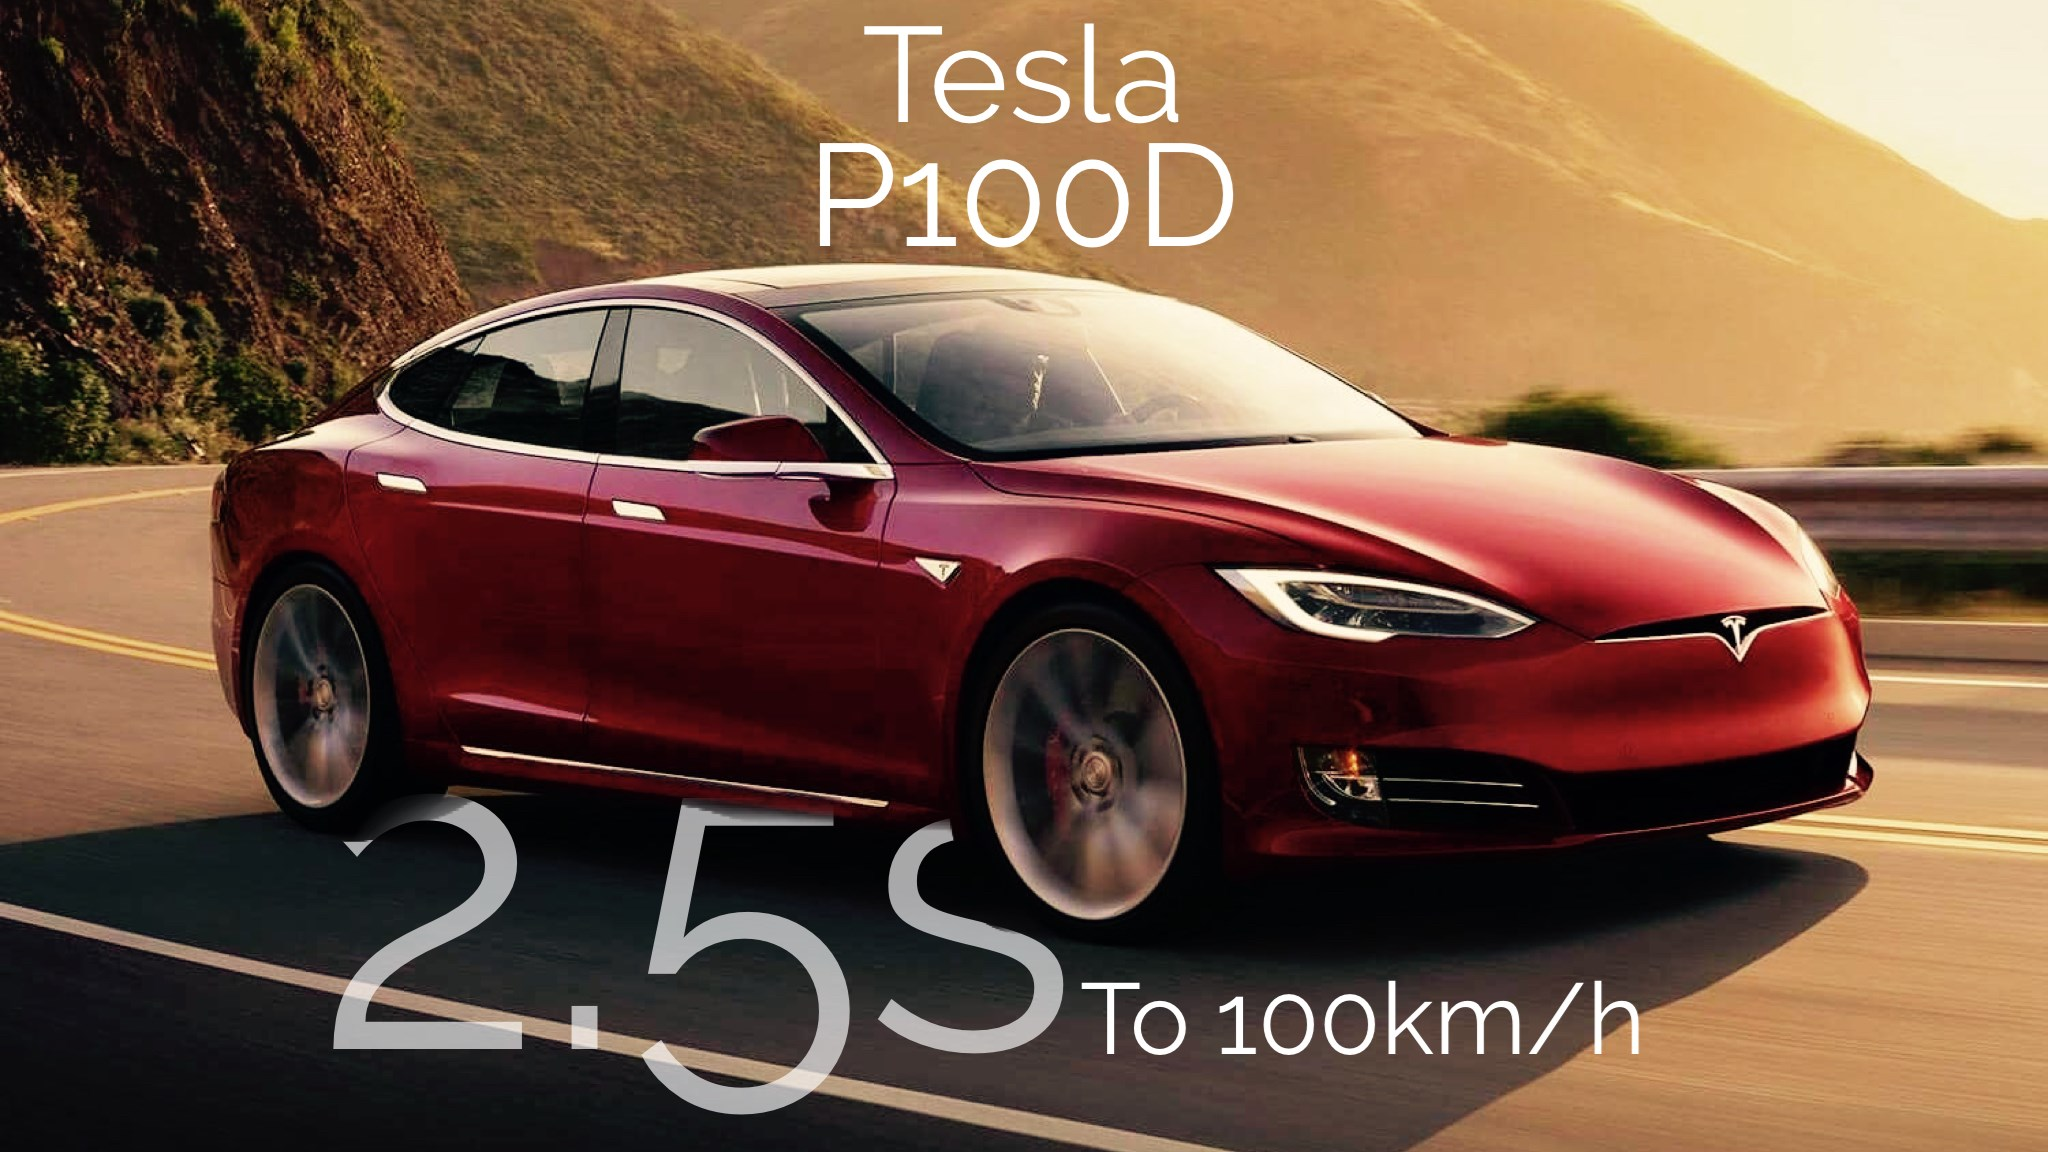 Tesla Confirms P100D Model S, Model X, 0-100 In 2.5s